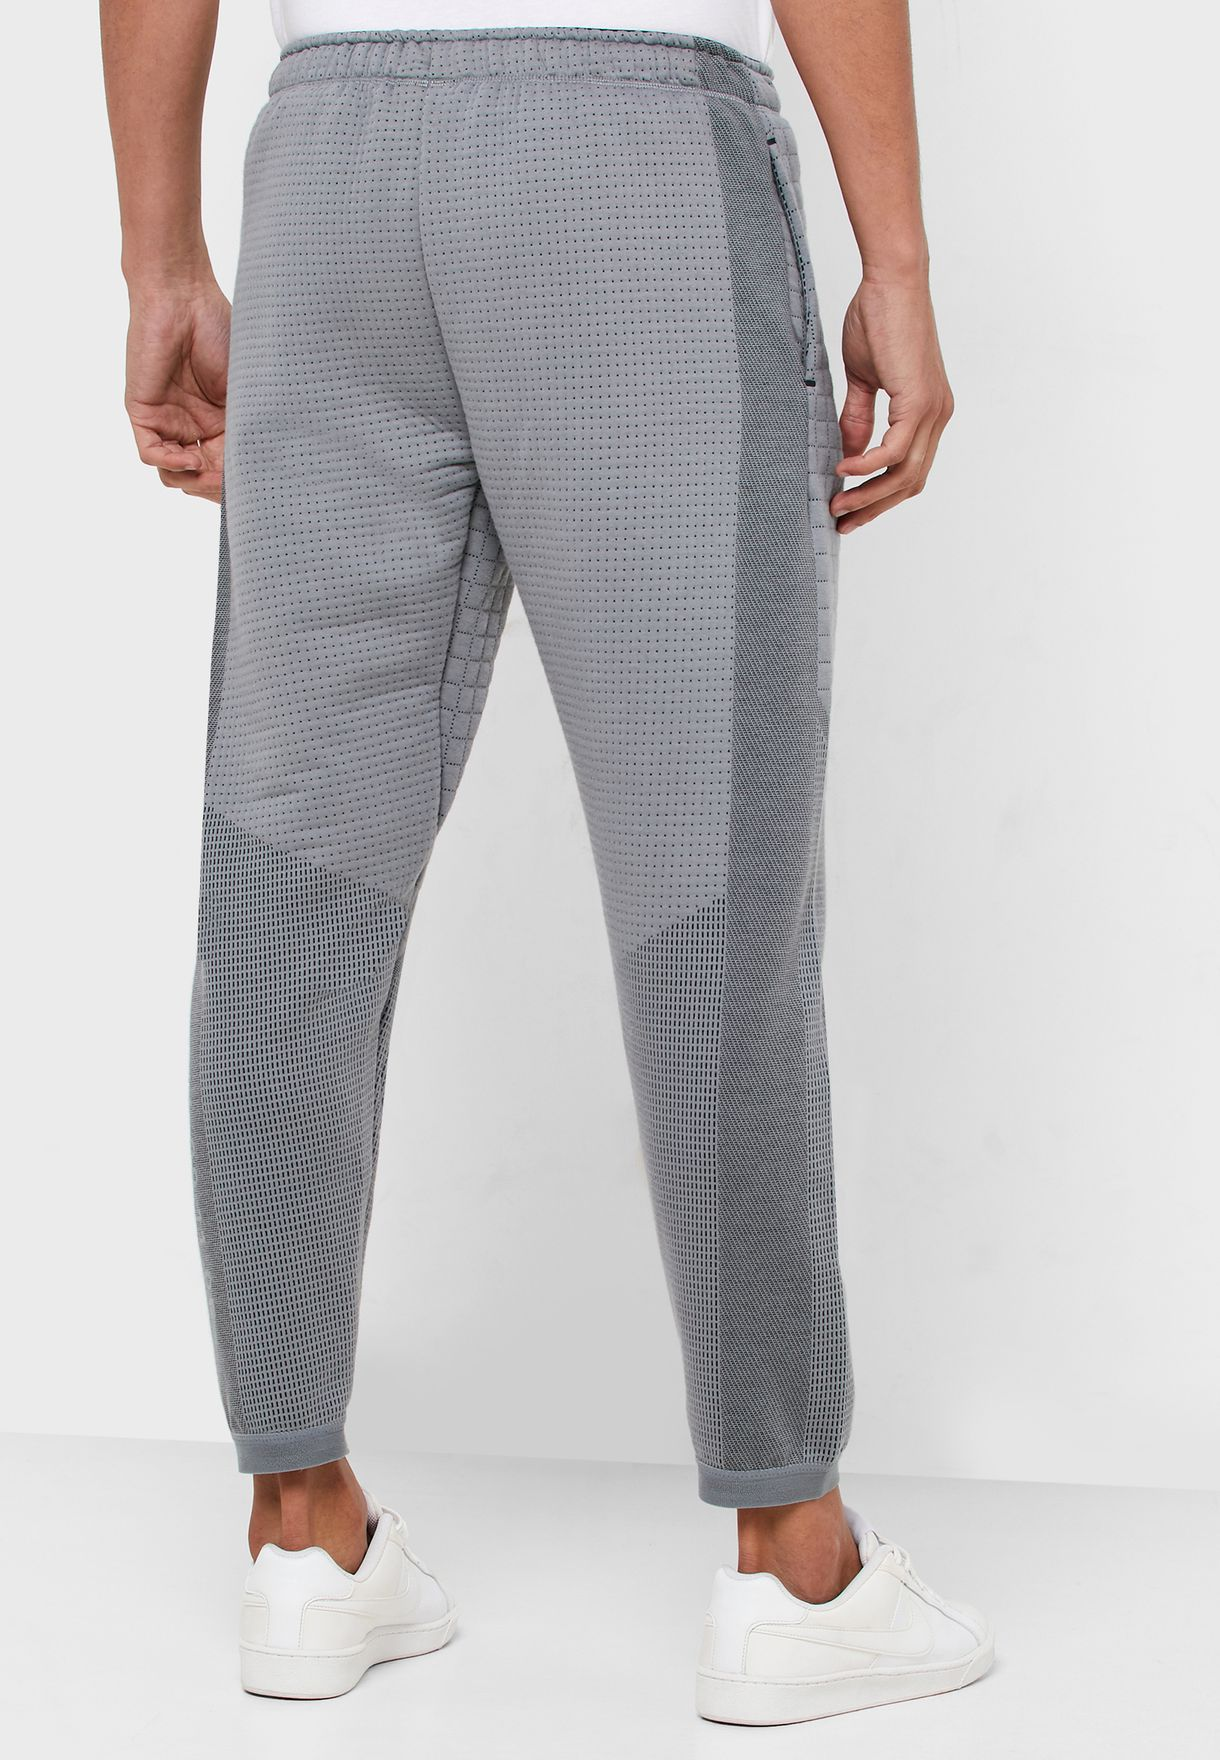 Tech Pack Fleece Sweatpants